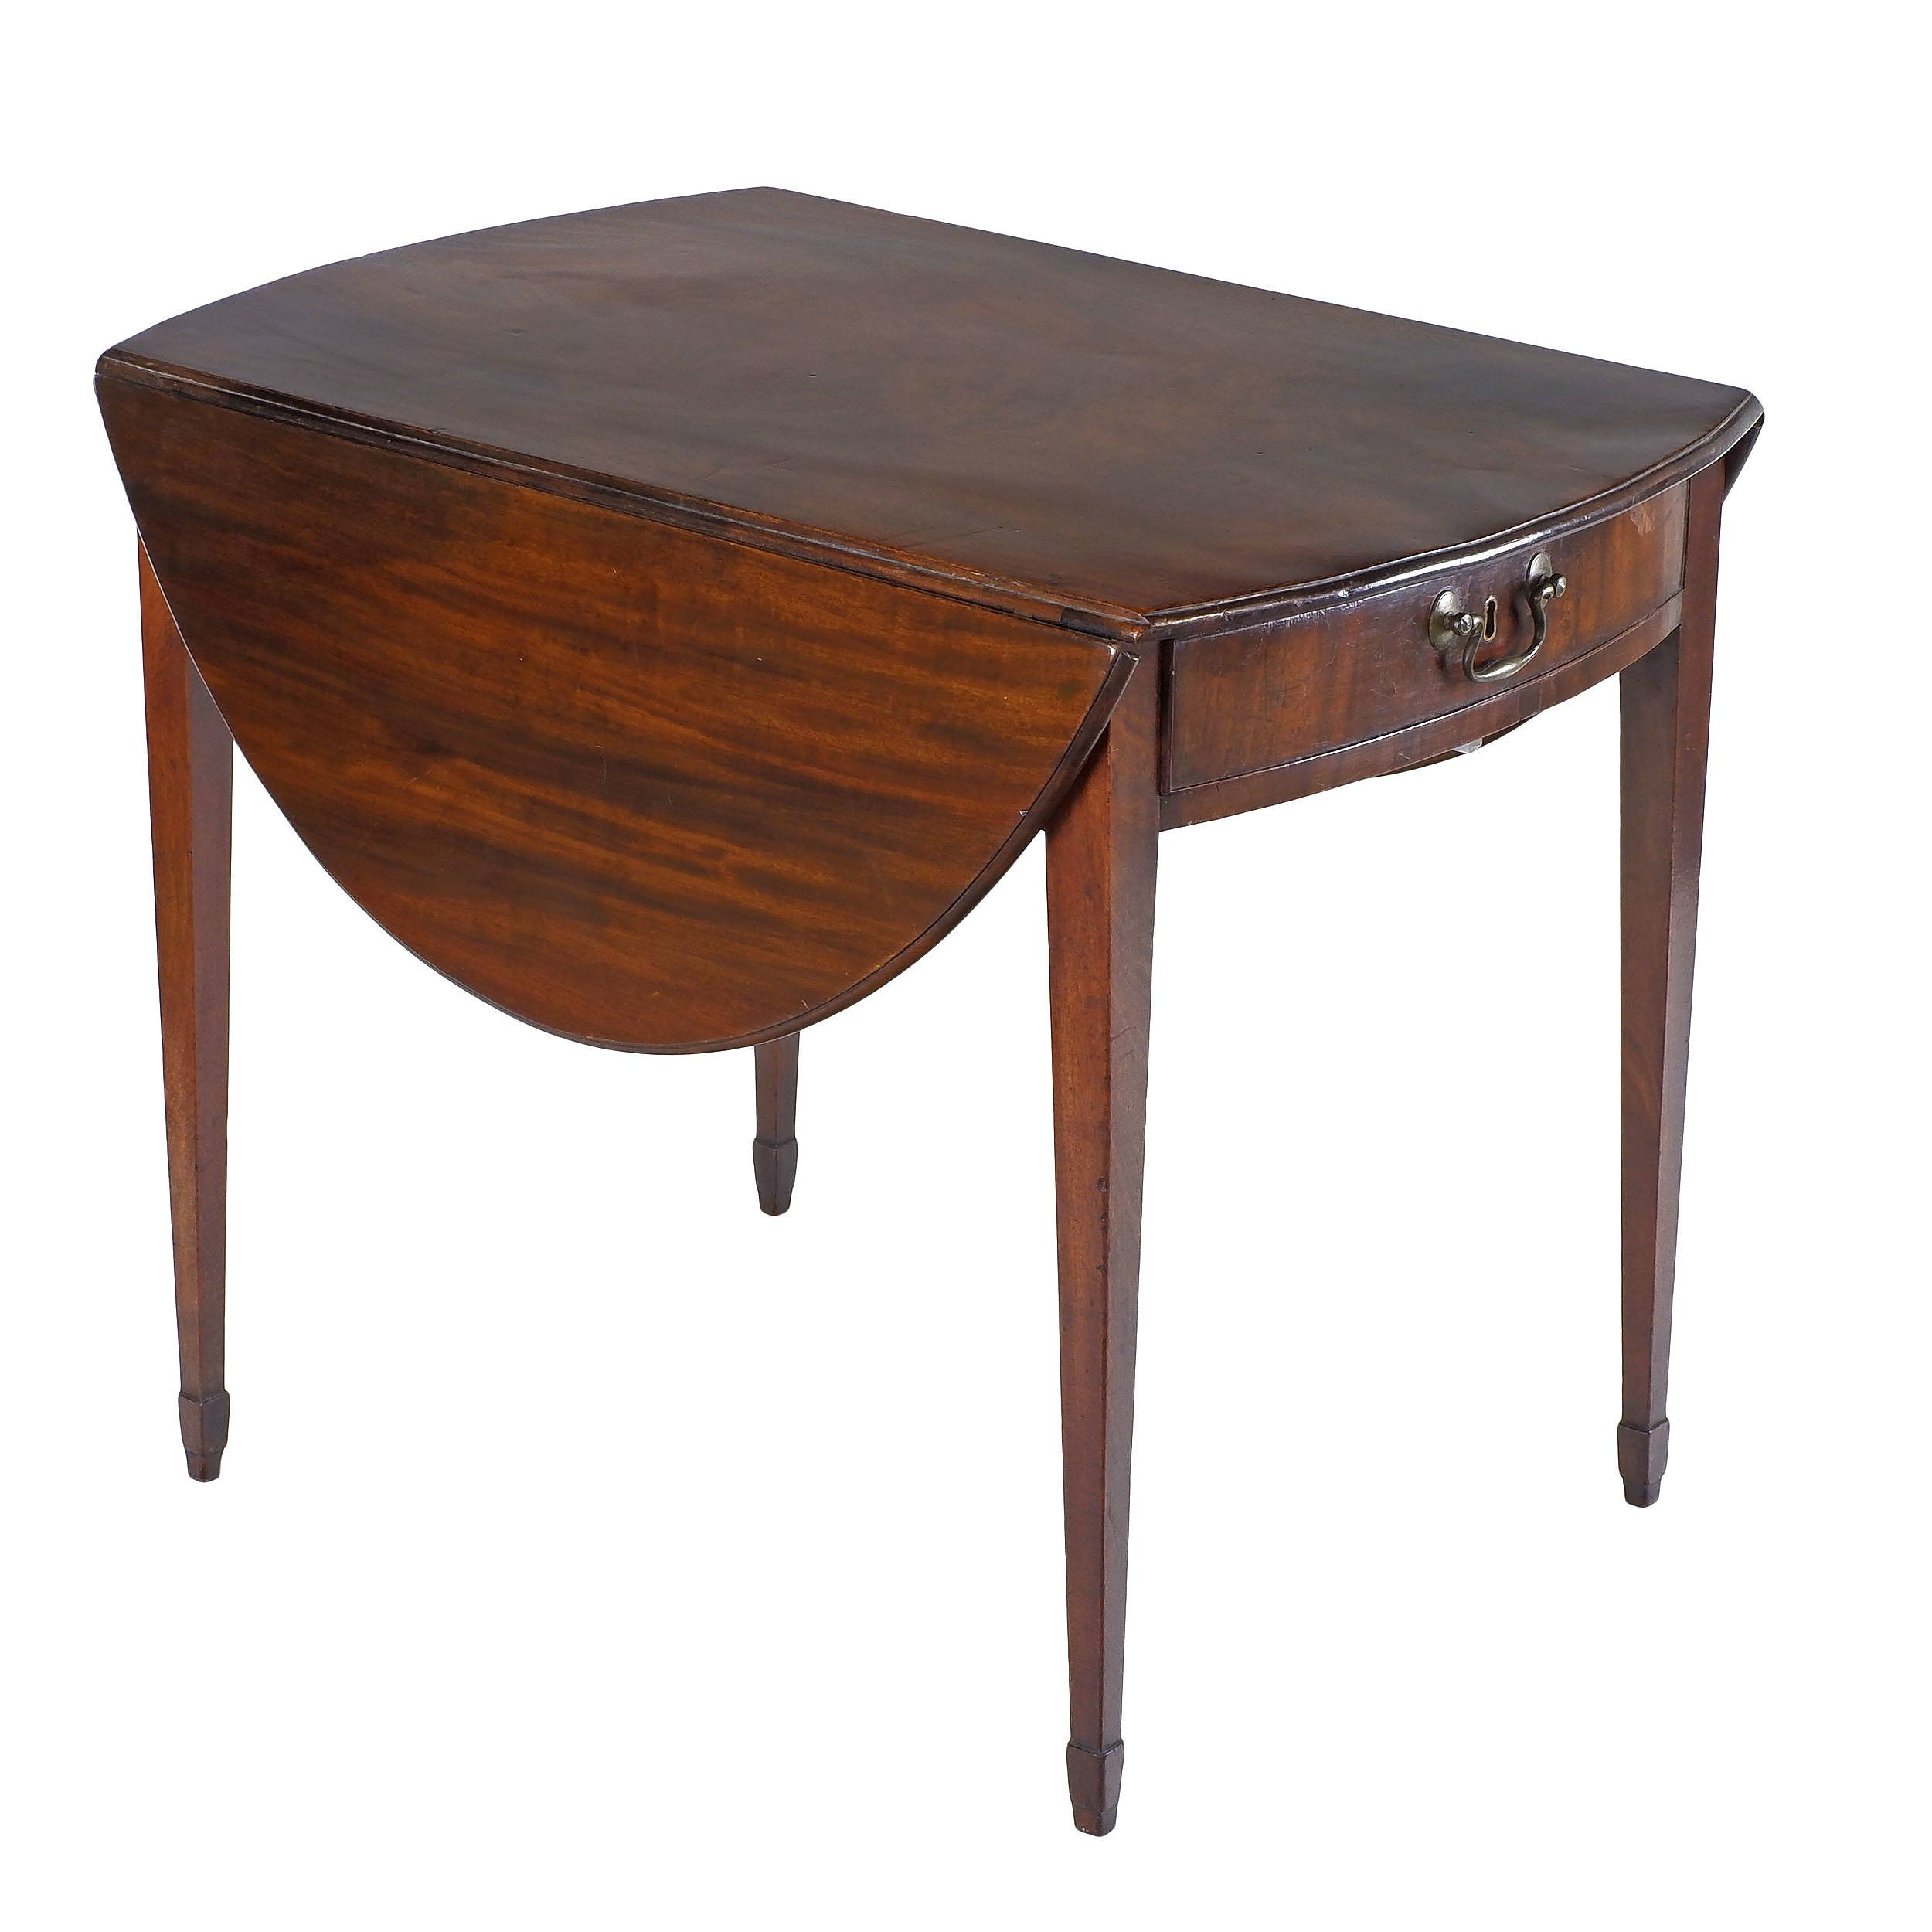 'George III Mahogany Pembroke Table with Spade Feet the Single Drawer Fitted for Tea Circa 1800'